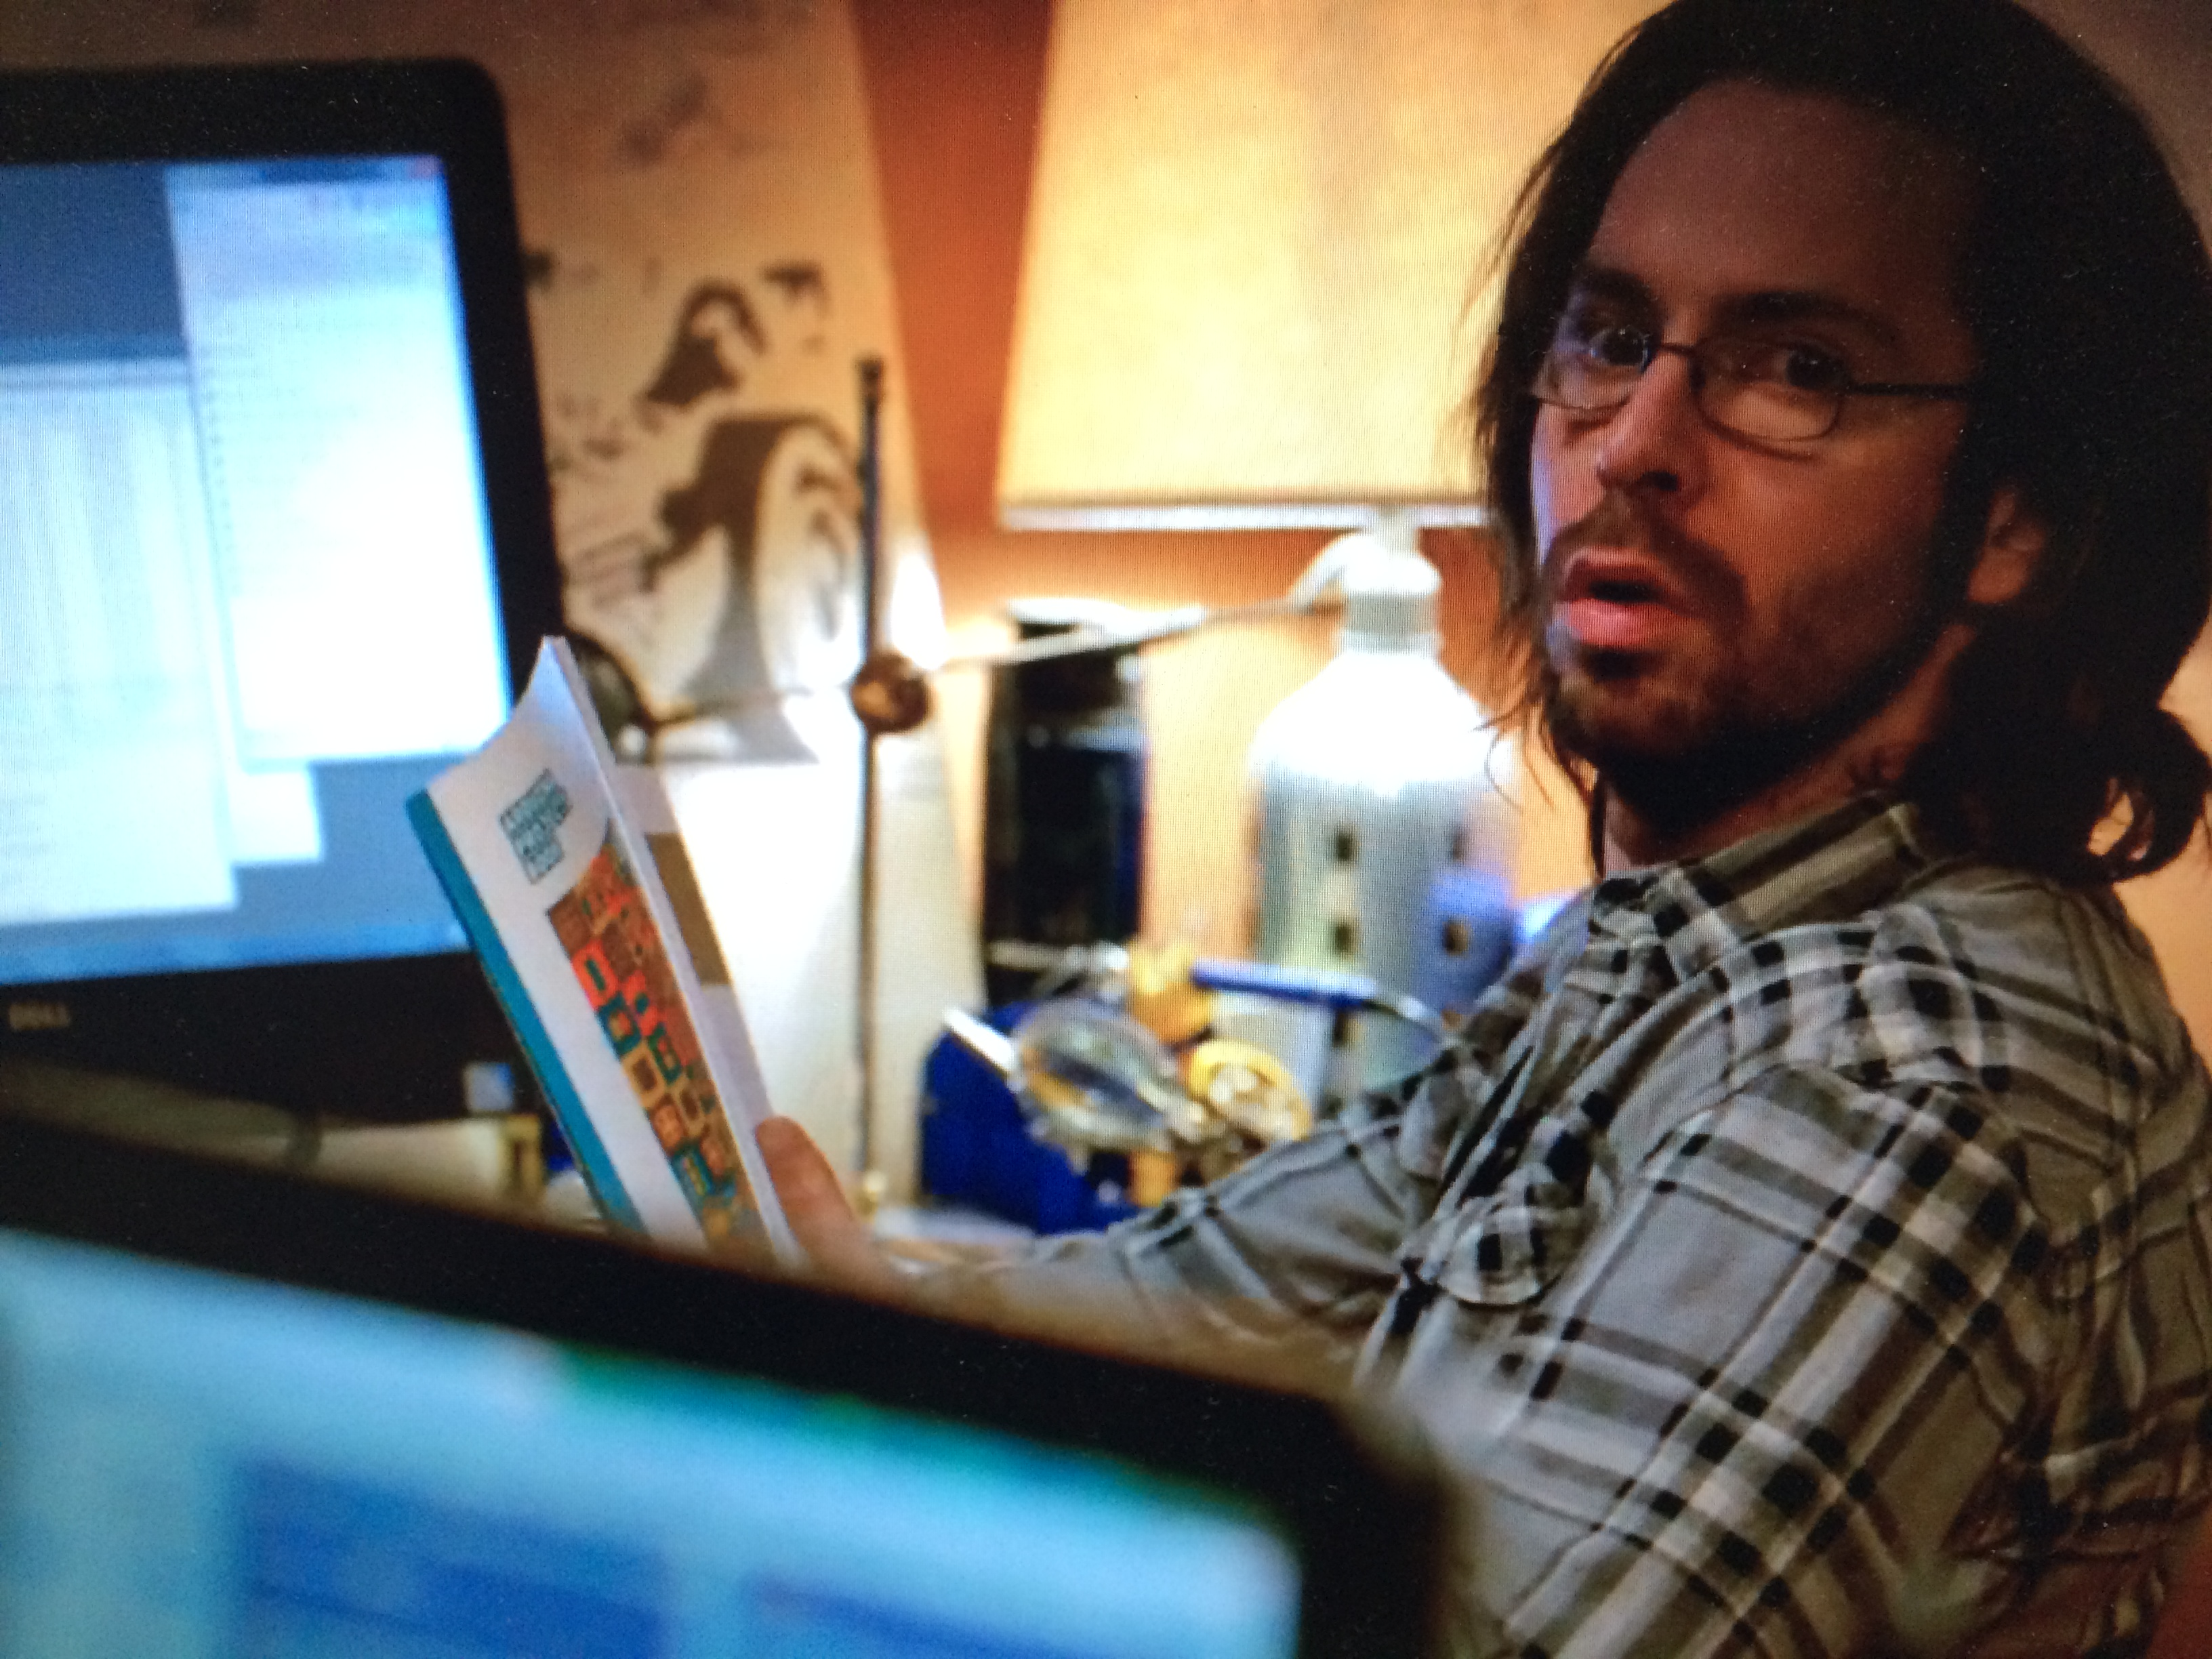 664084c511 Gilfoyle reading the project book from the Arduino Starter Kit on the show  Silicon Valley